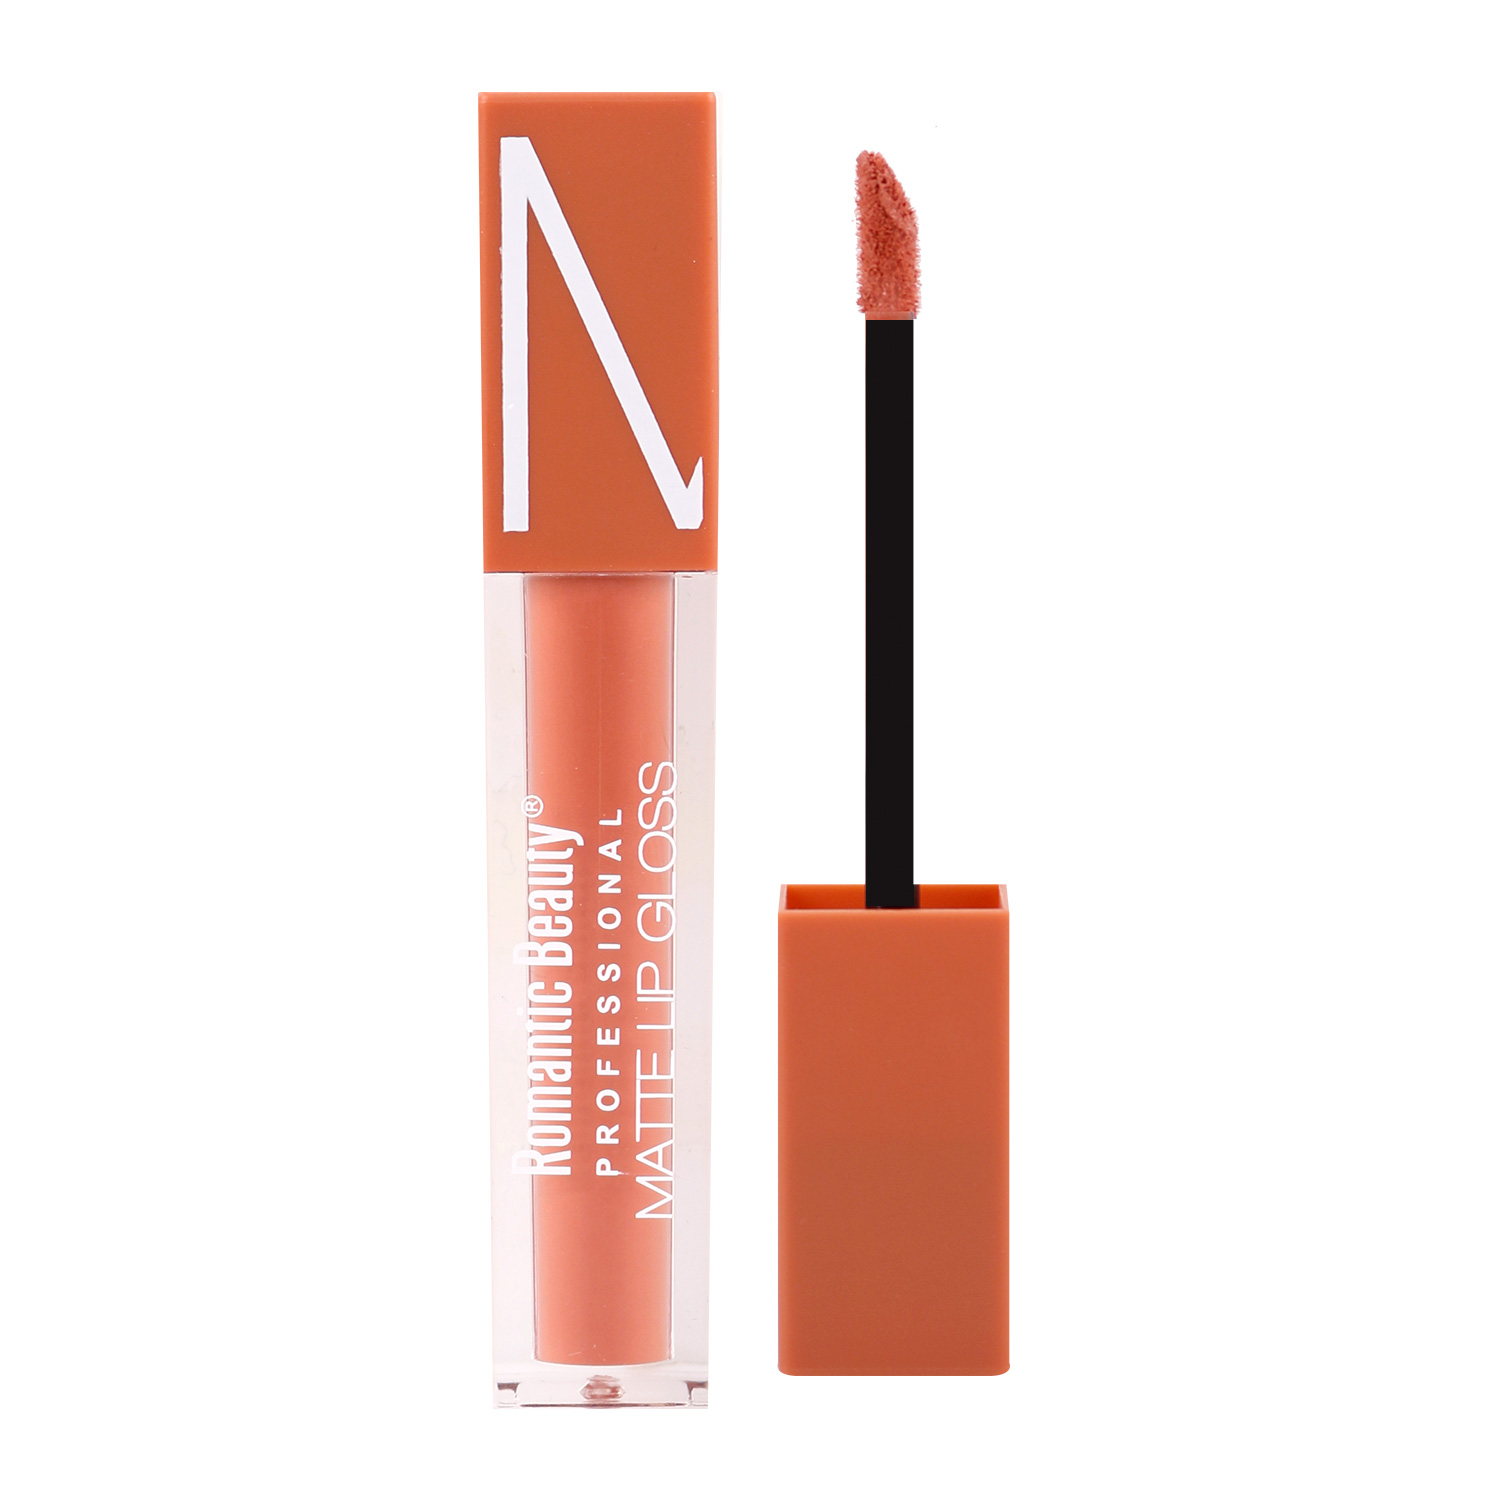 www.ikatehouse.com - Romantic Beauty Professional Matte Lip Gloss